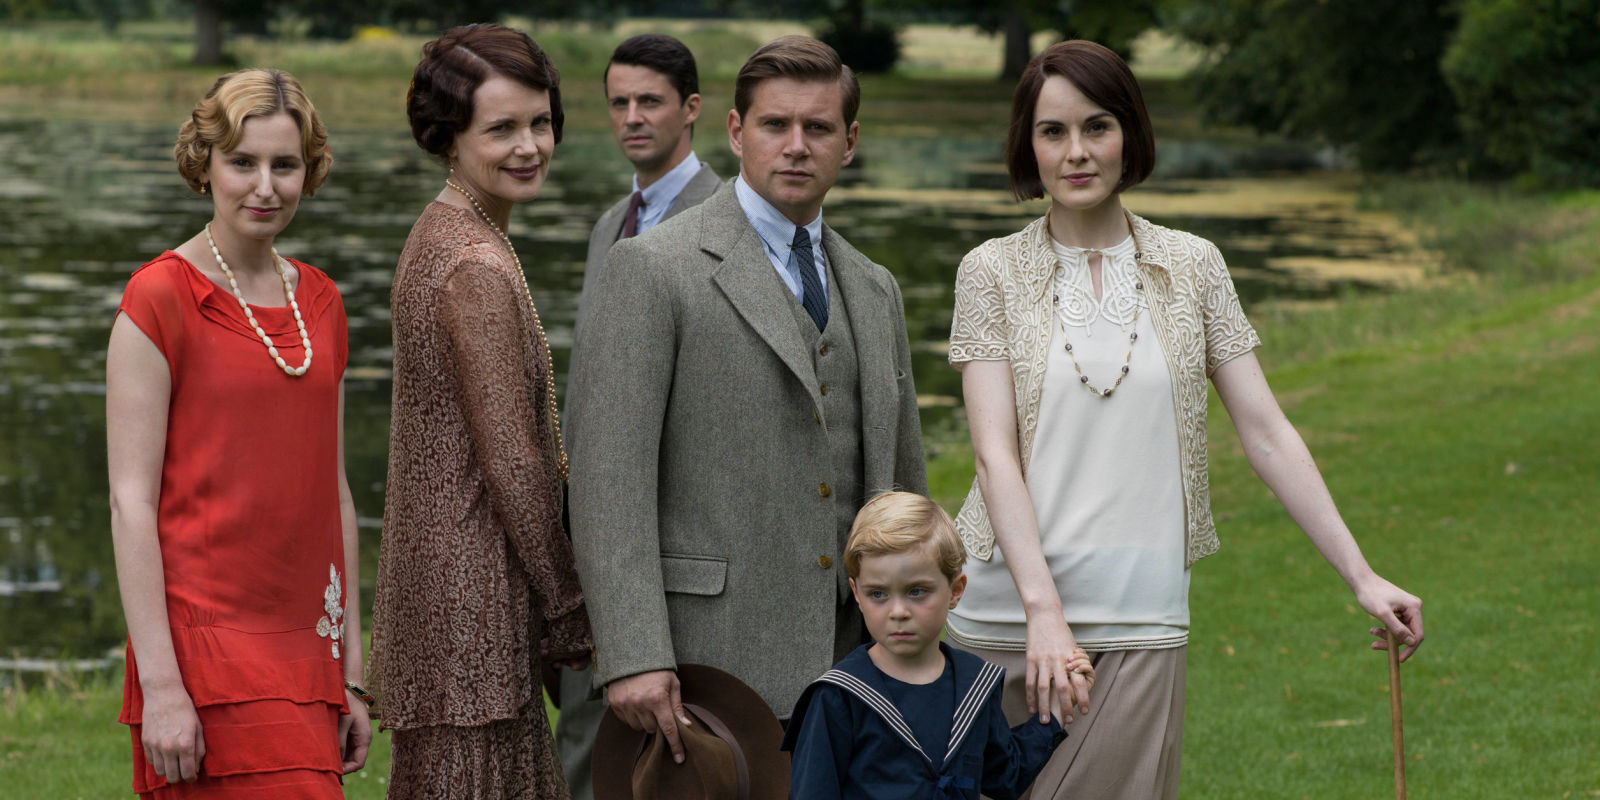 Downton Abbey movie: Cast, release date, plot and everything you need to know